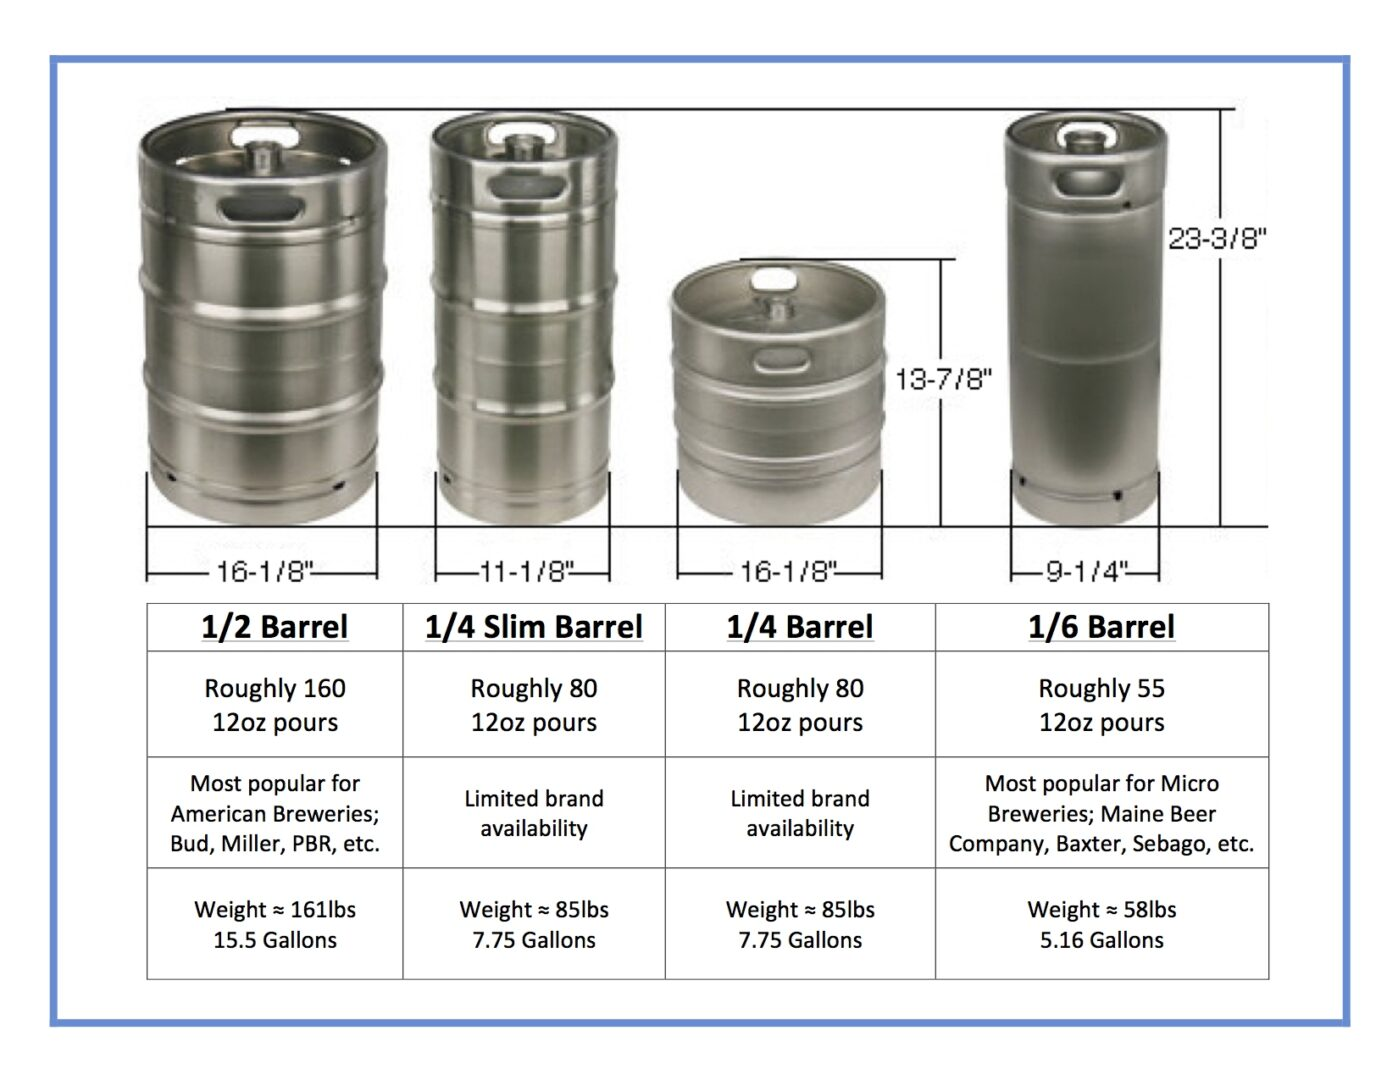 Image depicting U.S. domestic draft beer barrel sizes and capacities